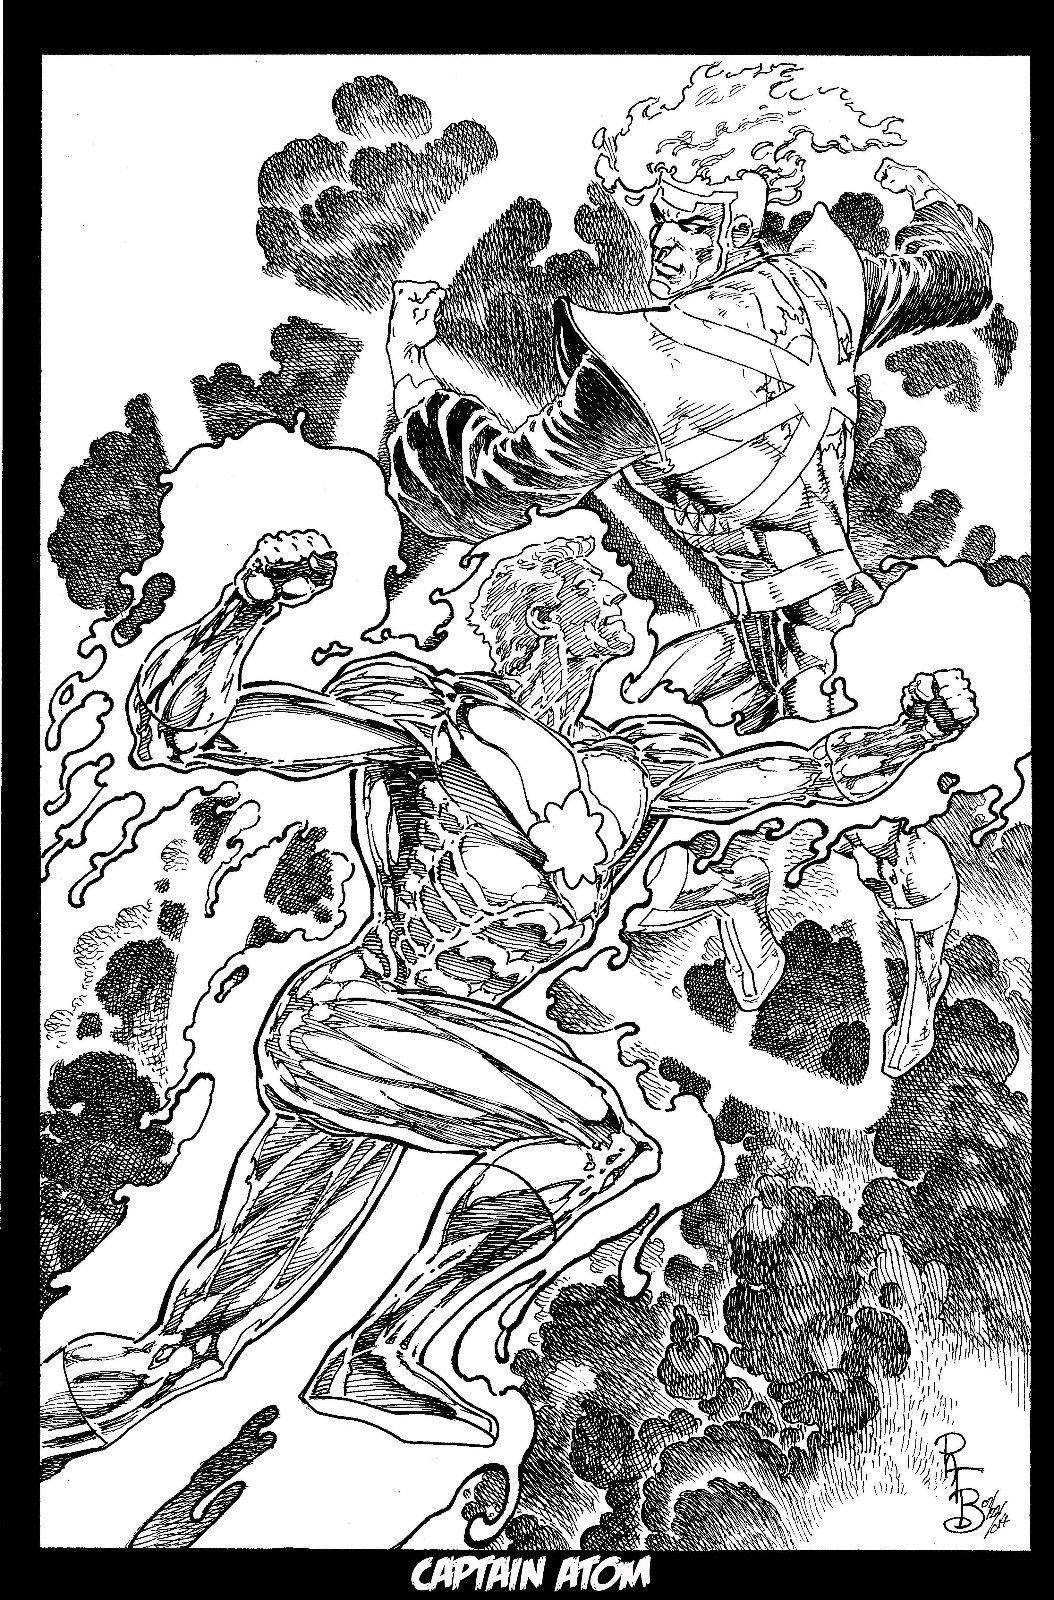 Firestorm vs Captain Atom by Pat Broderick